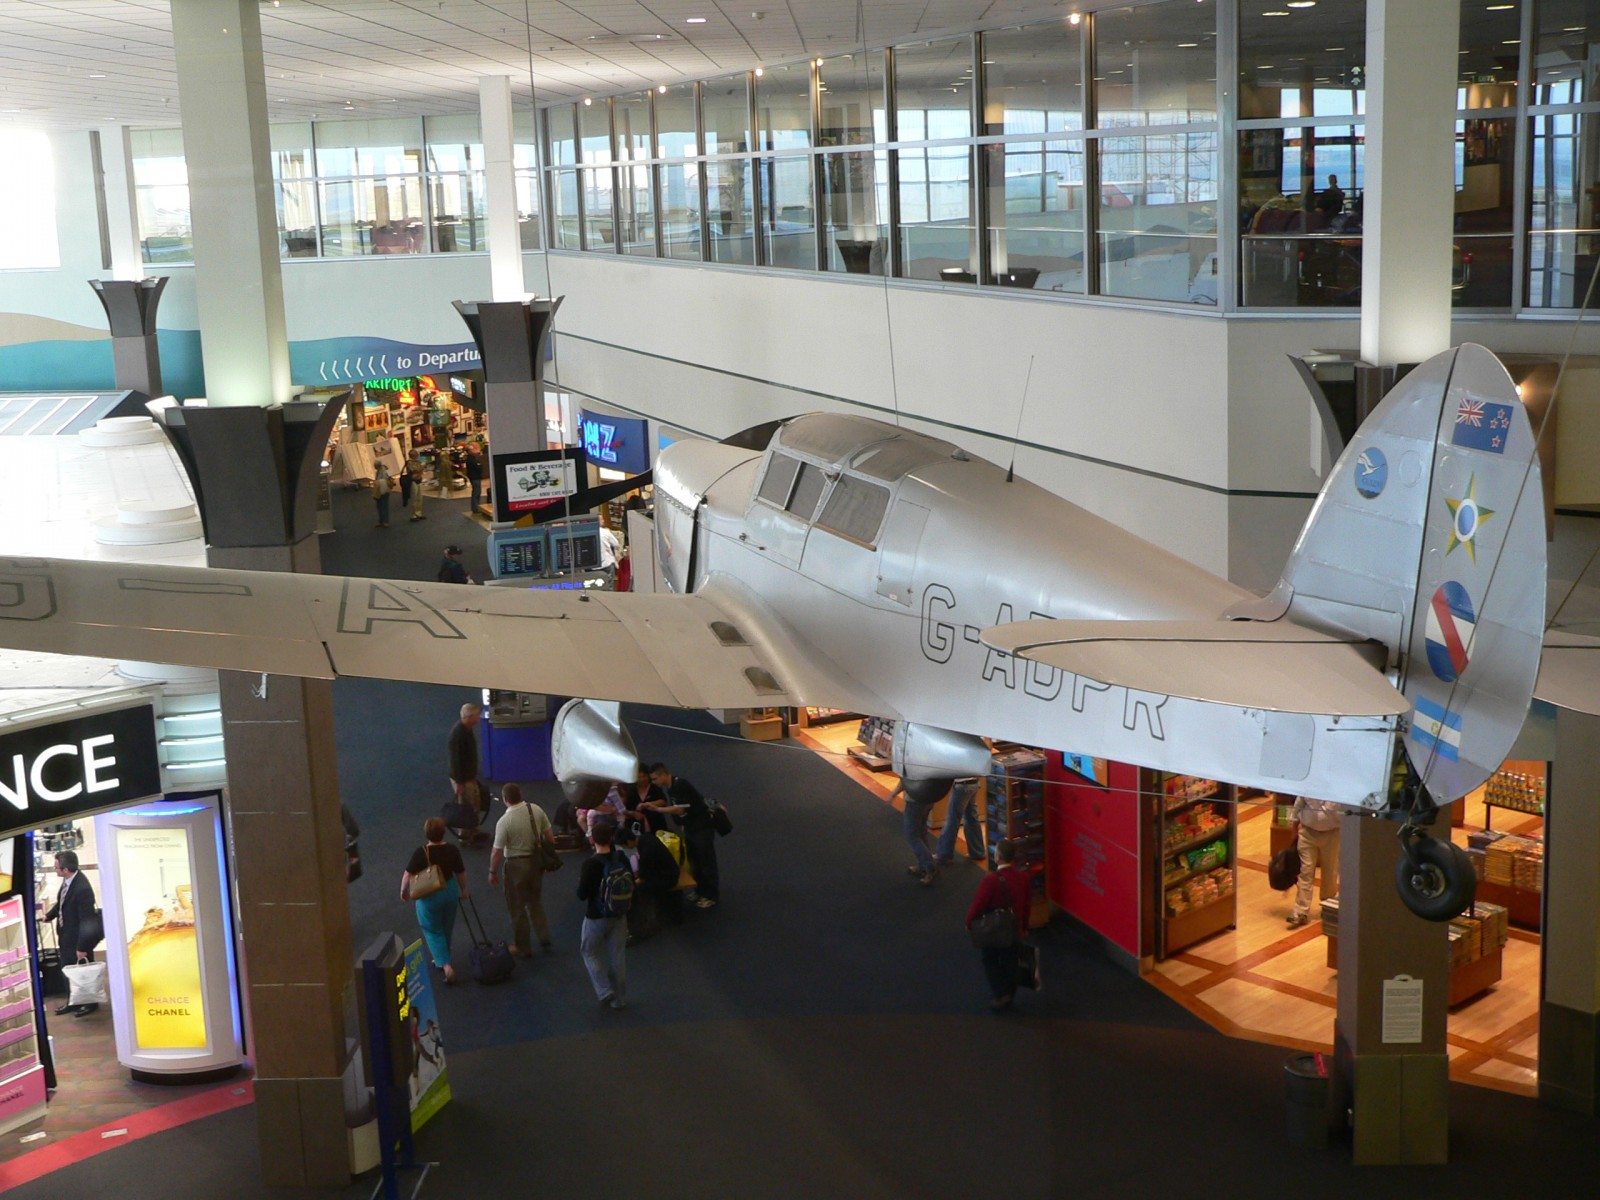 The international terminal at Auckland Airport has been named after Jean and her Percival Gull plane is suspended within. Although a fitting tribute, neither conjures up the glamour that once attached to her and that she so cherished.